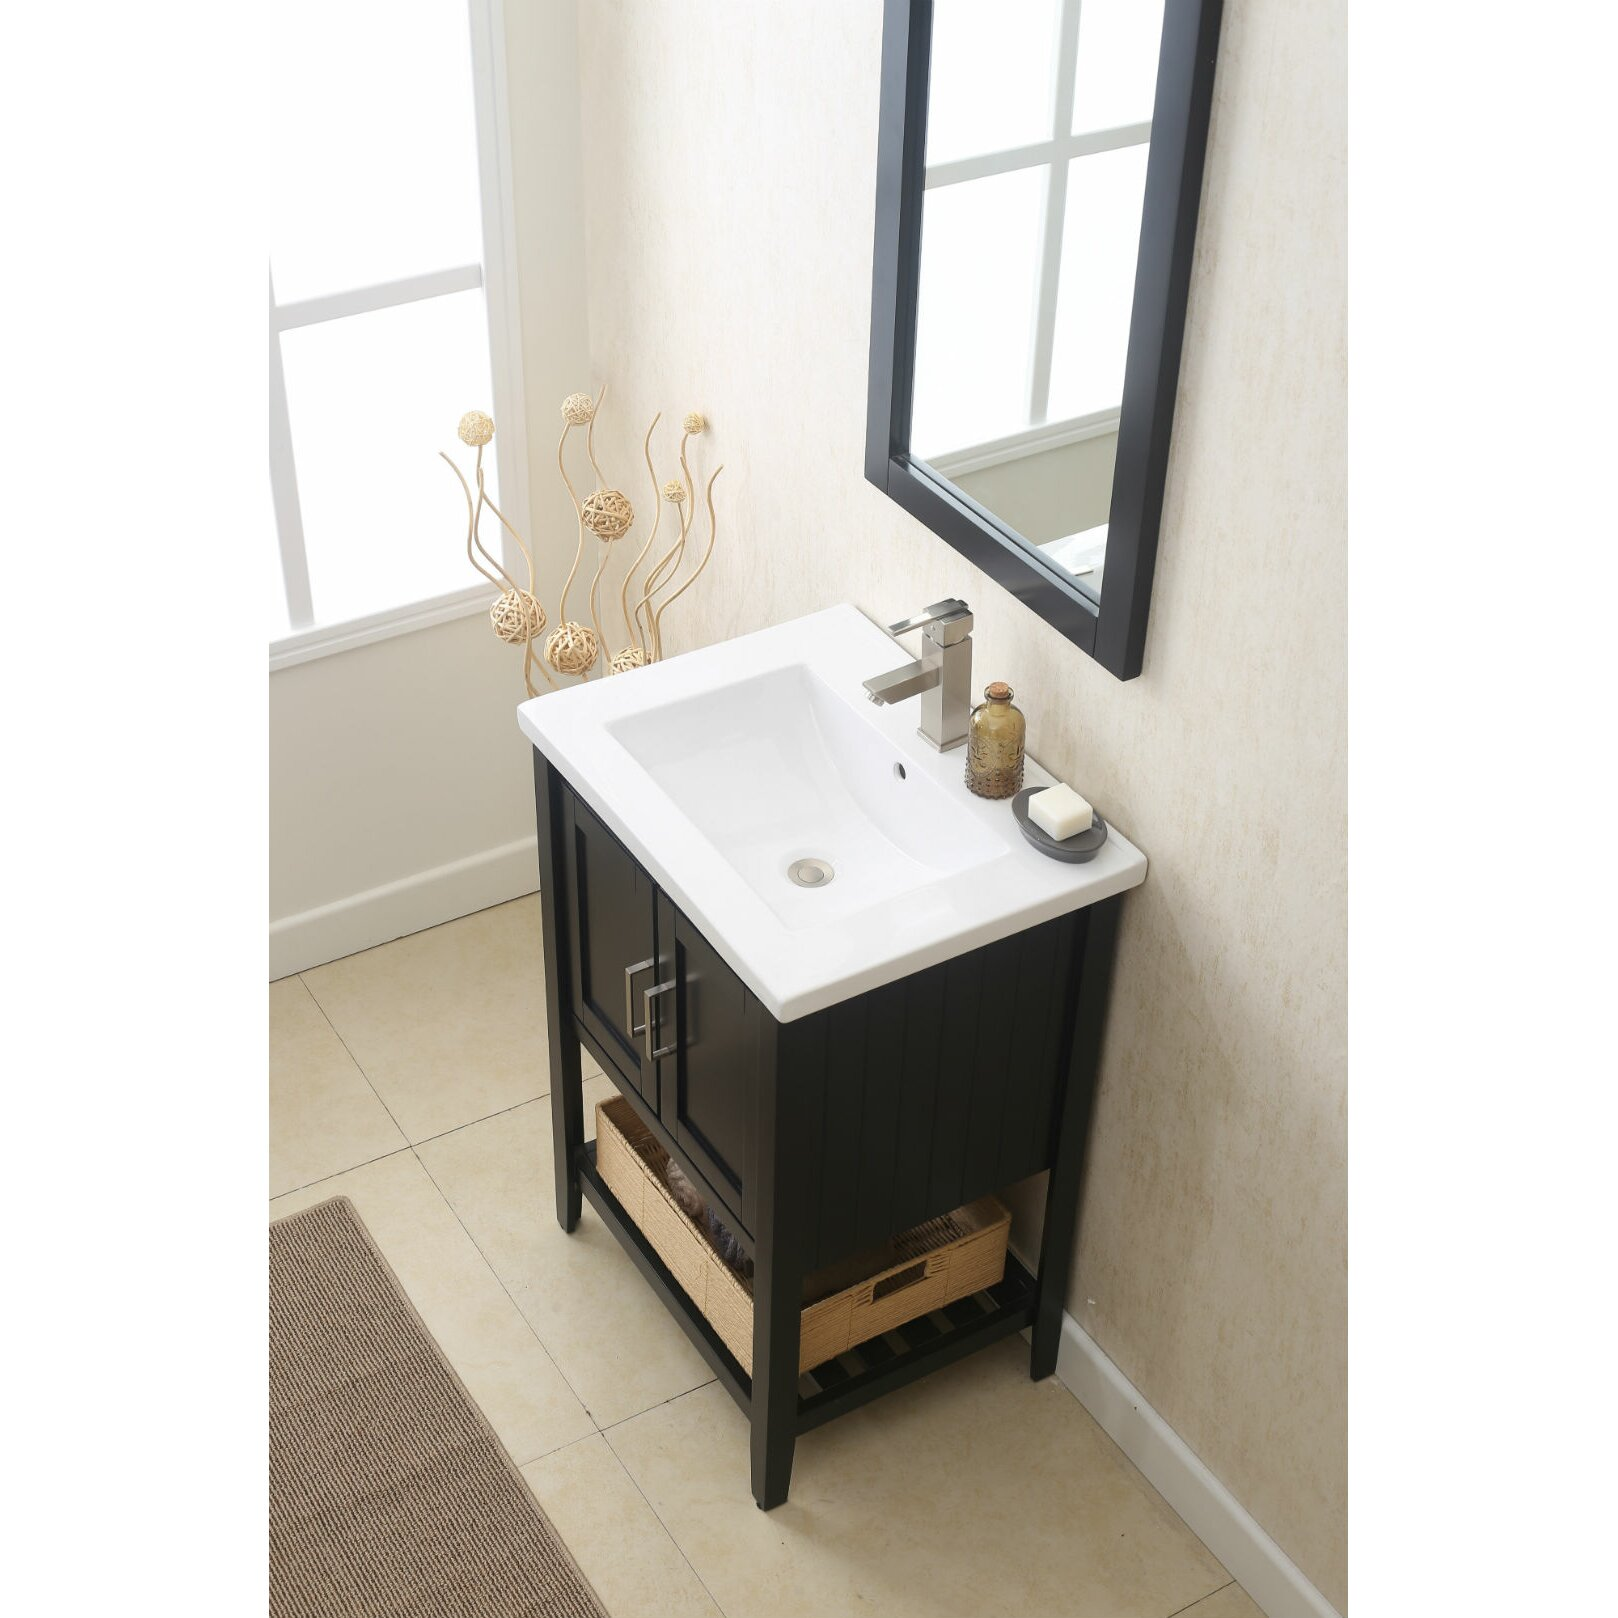 Legion furniture 24 single vanity set with mirror for Vanity mirror sets furniture